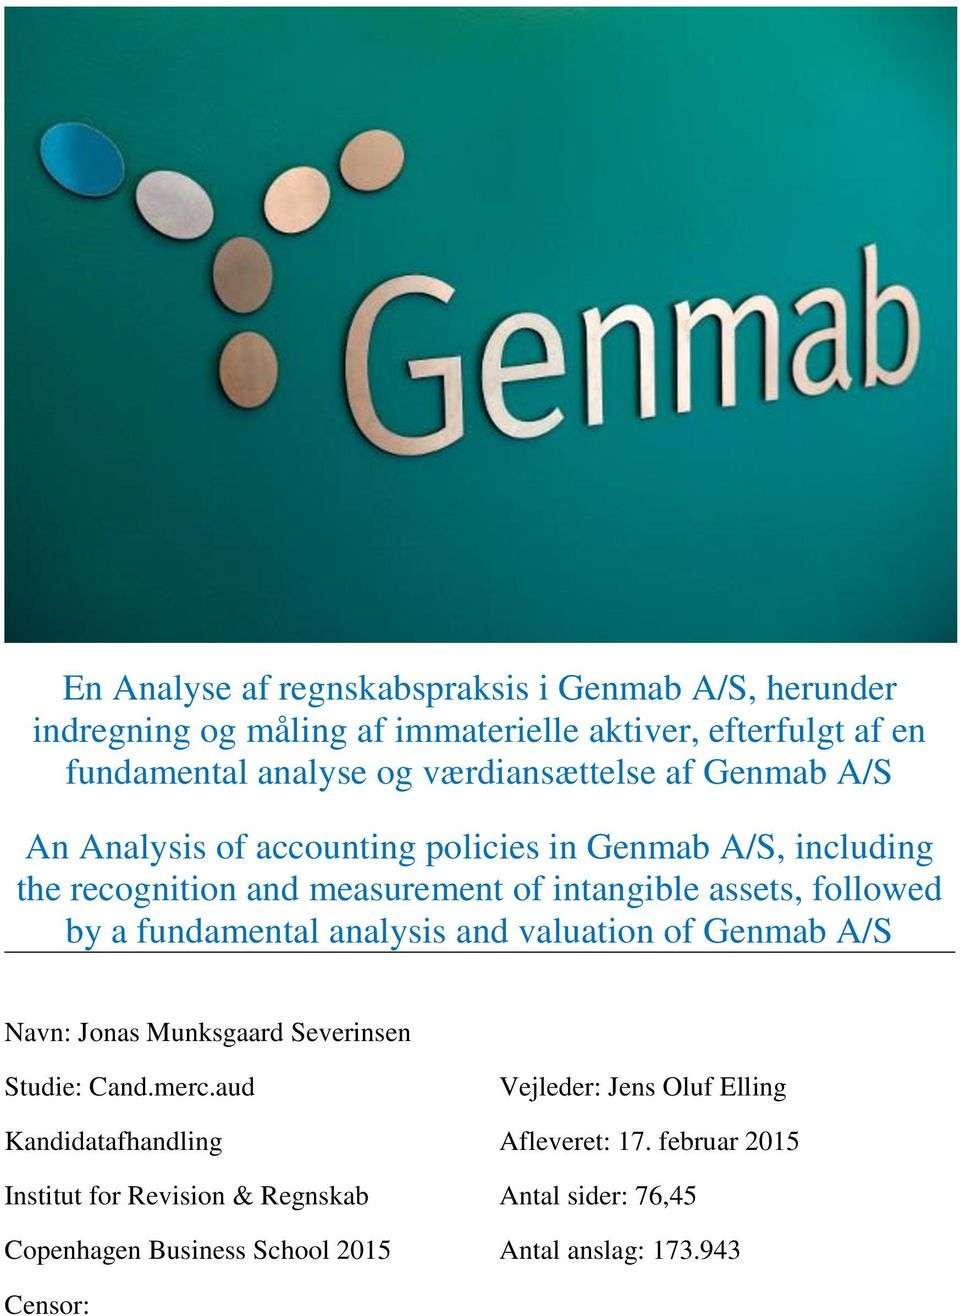 assets, followed by a fundamental analysis and valuation of Genmab A/S Studie: Cand.merc.